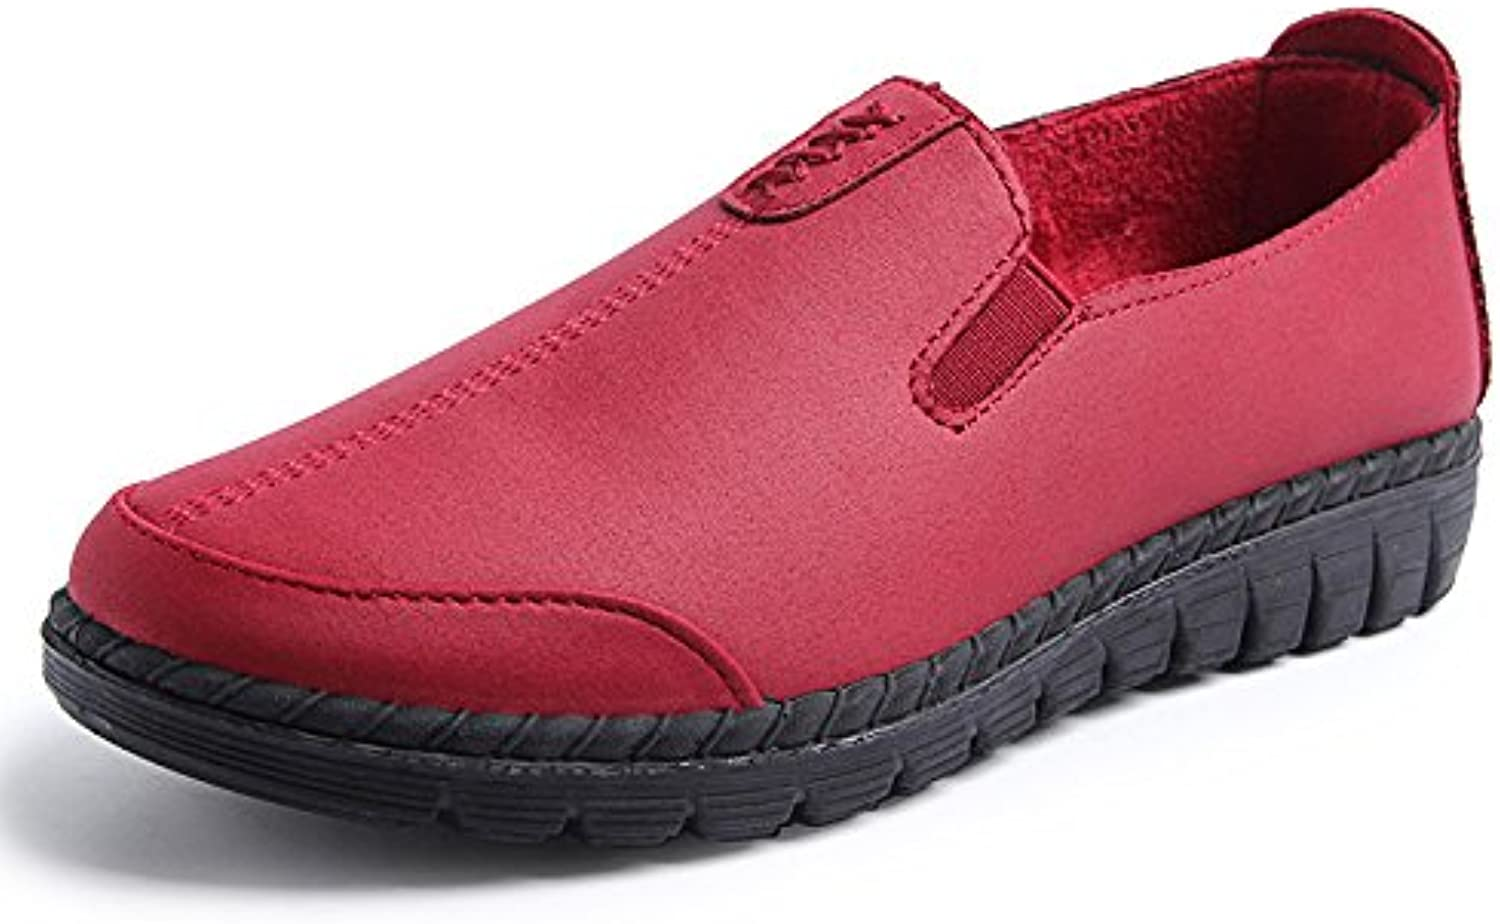 WHW Women shoes comfortable casual shoes ,red,40 mesh upper